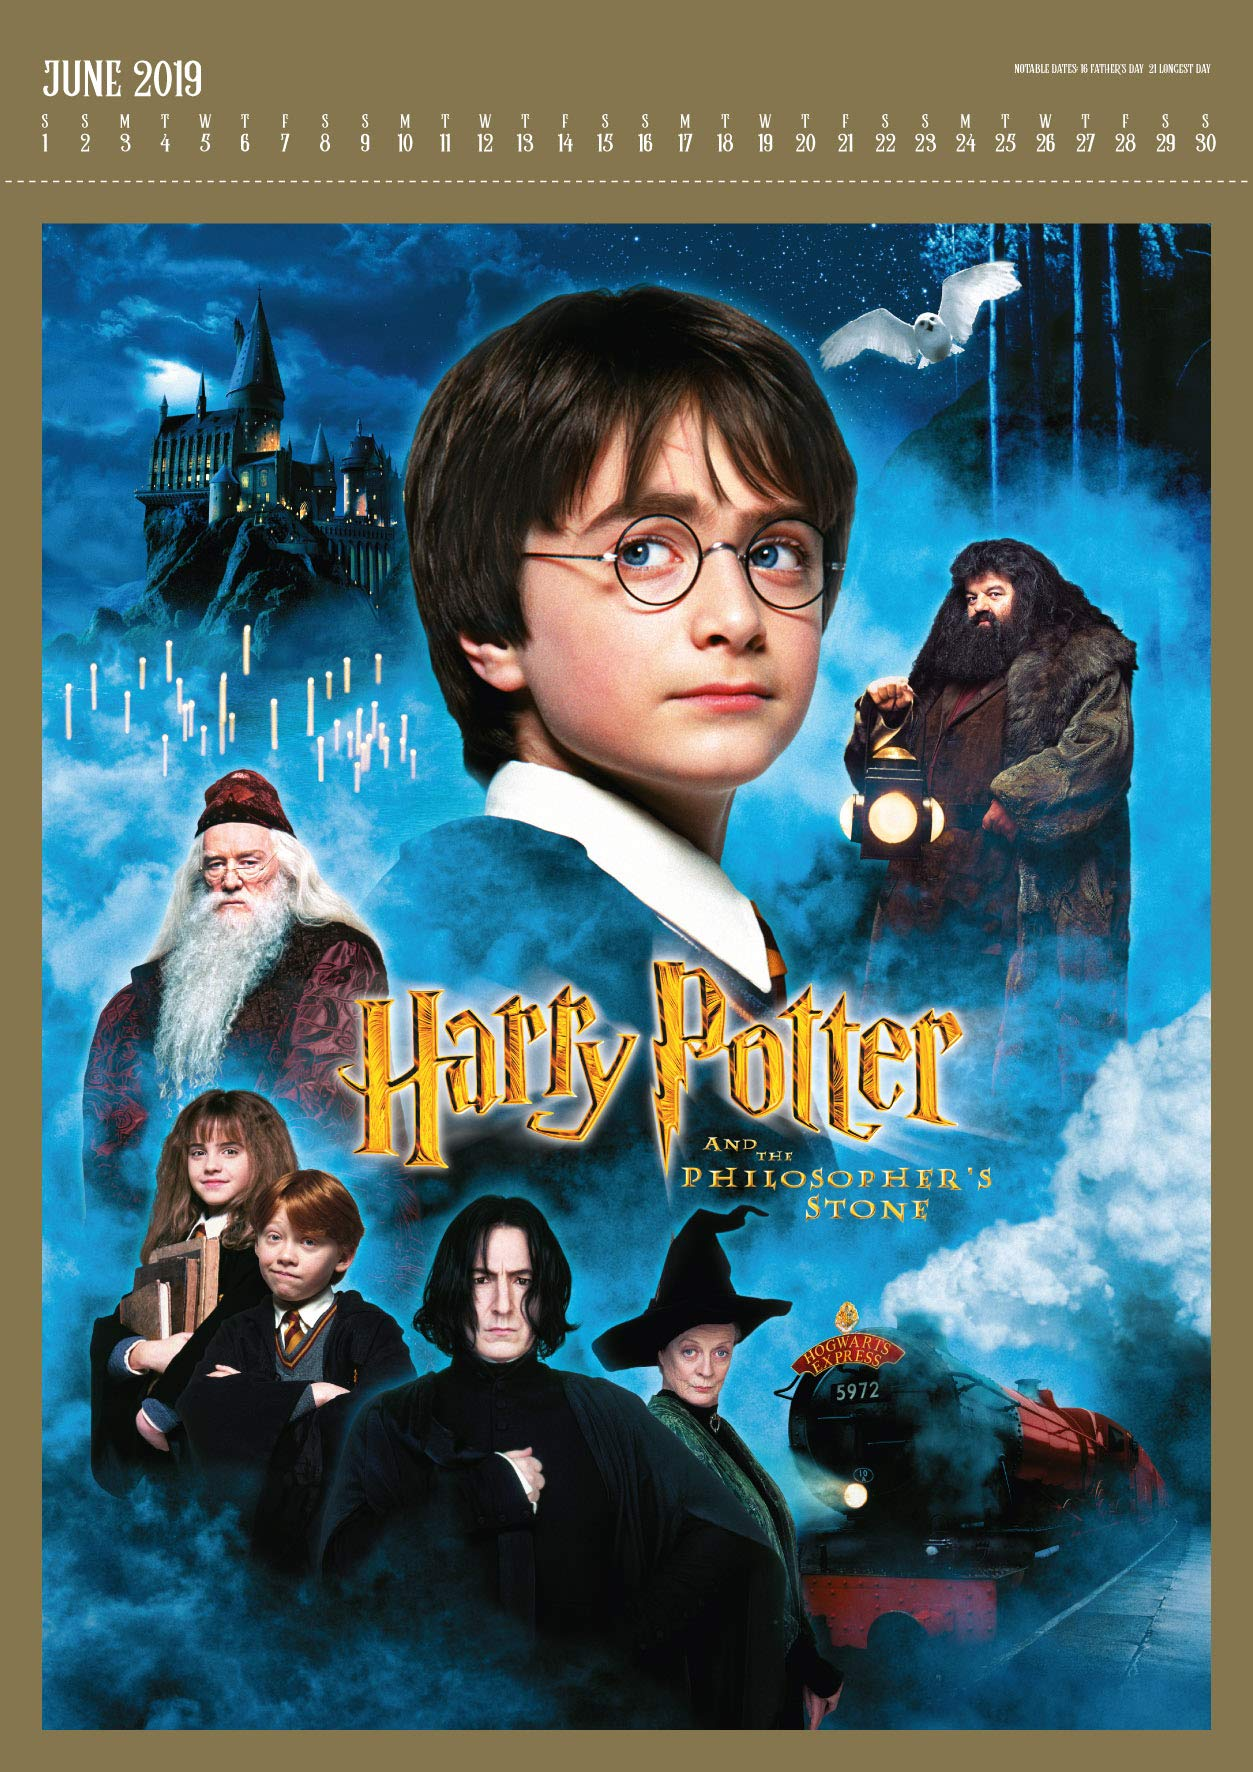 Harry Potter Deluxe Official 2019 Calendar A3 with Presentation Envelope Format Calendar Danilo Promotions Limited 1785498606